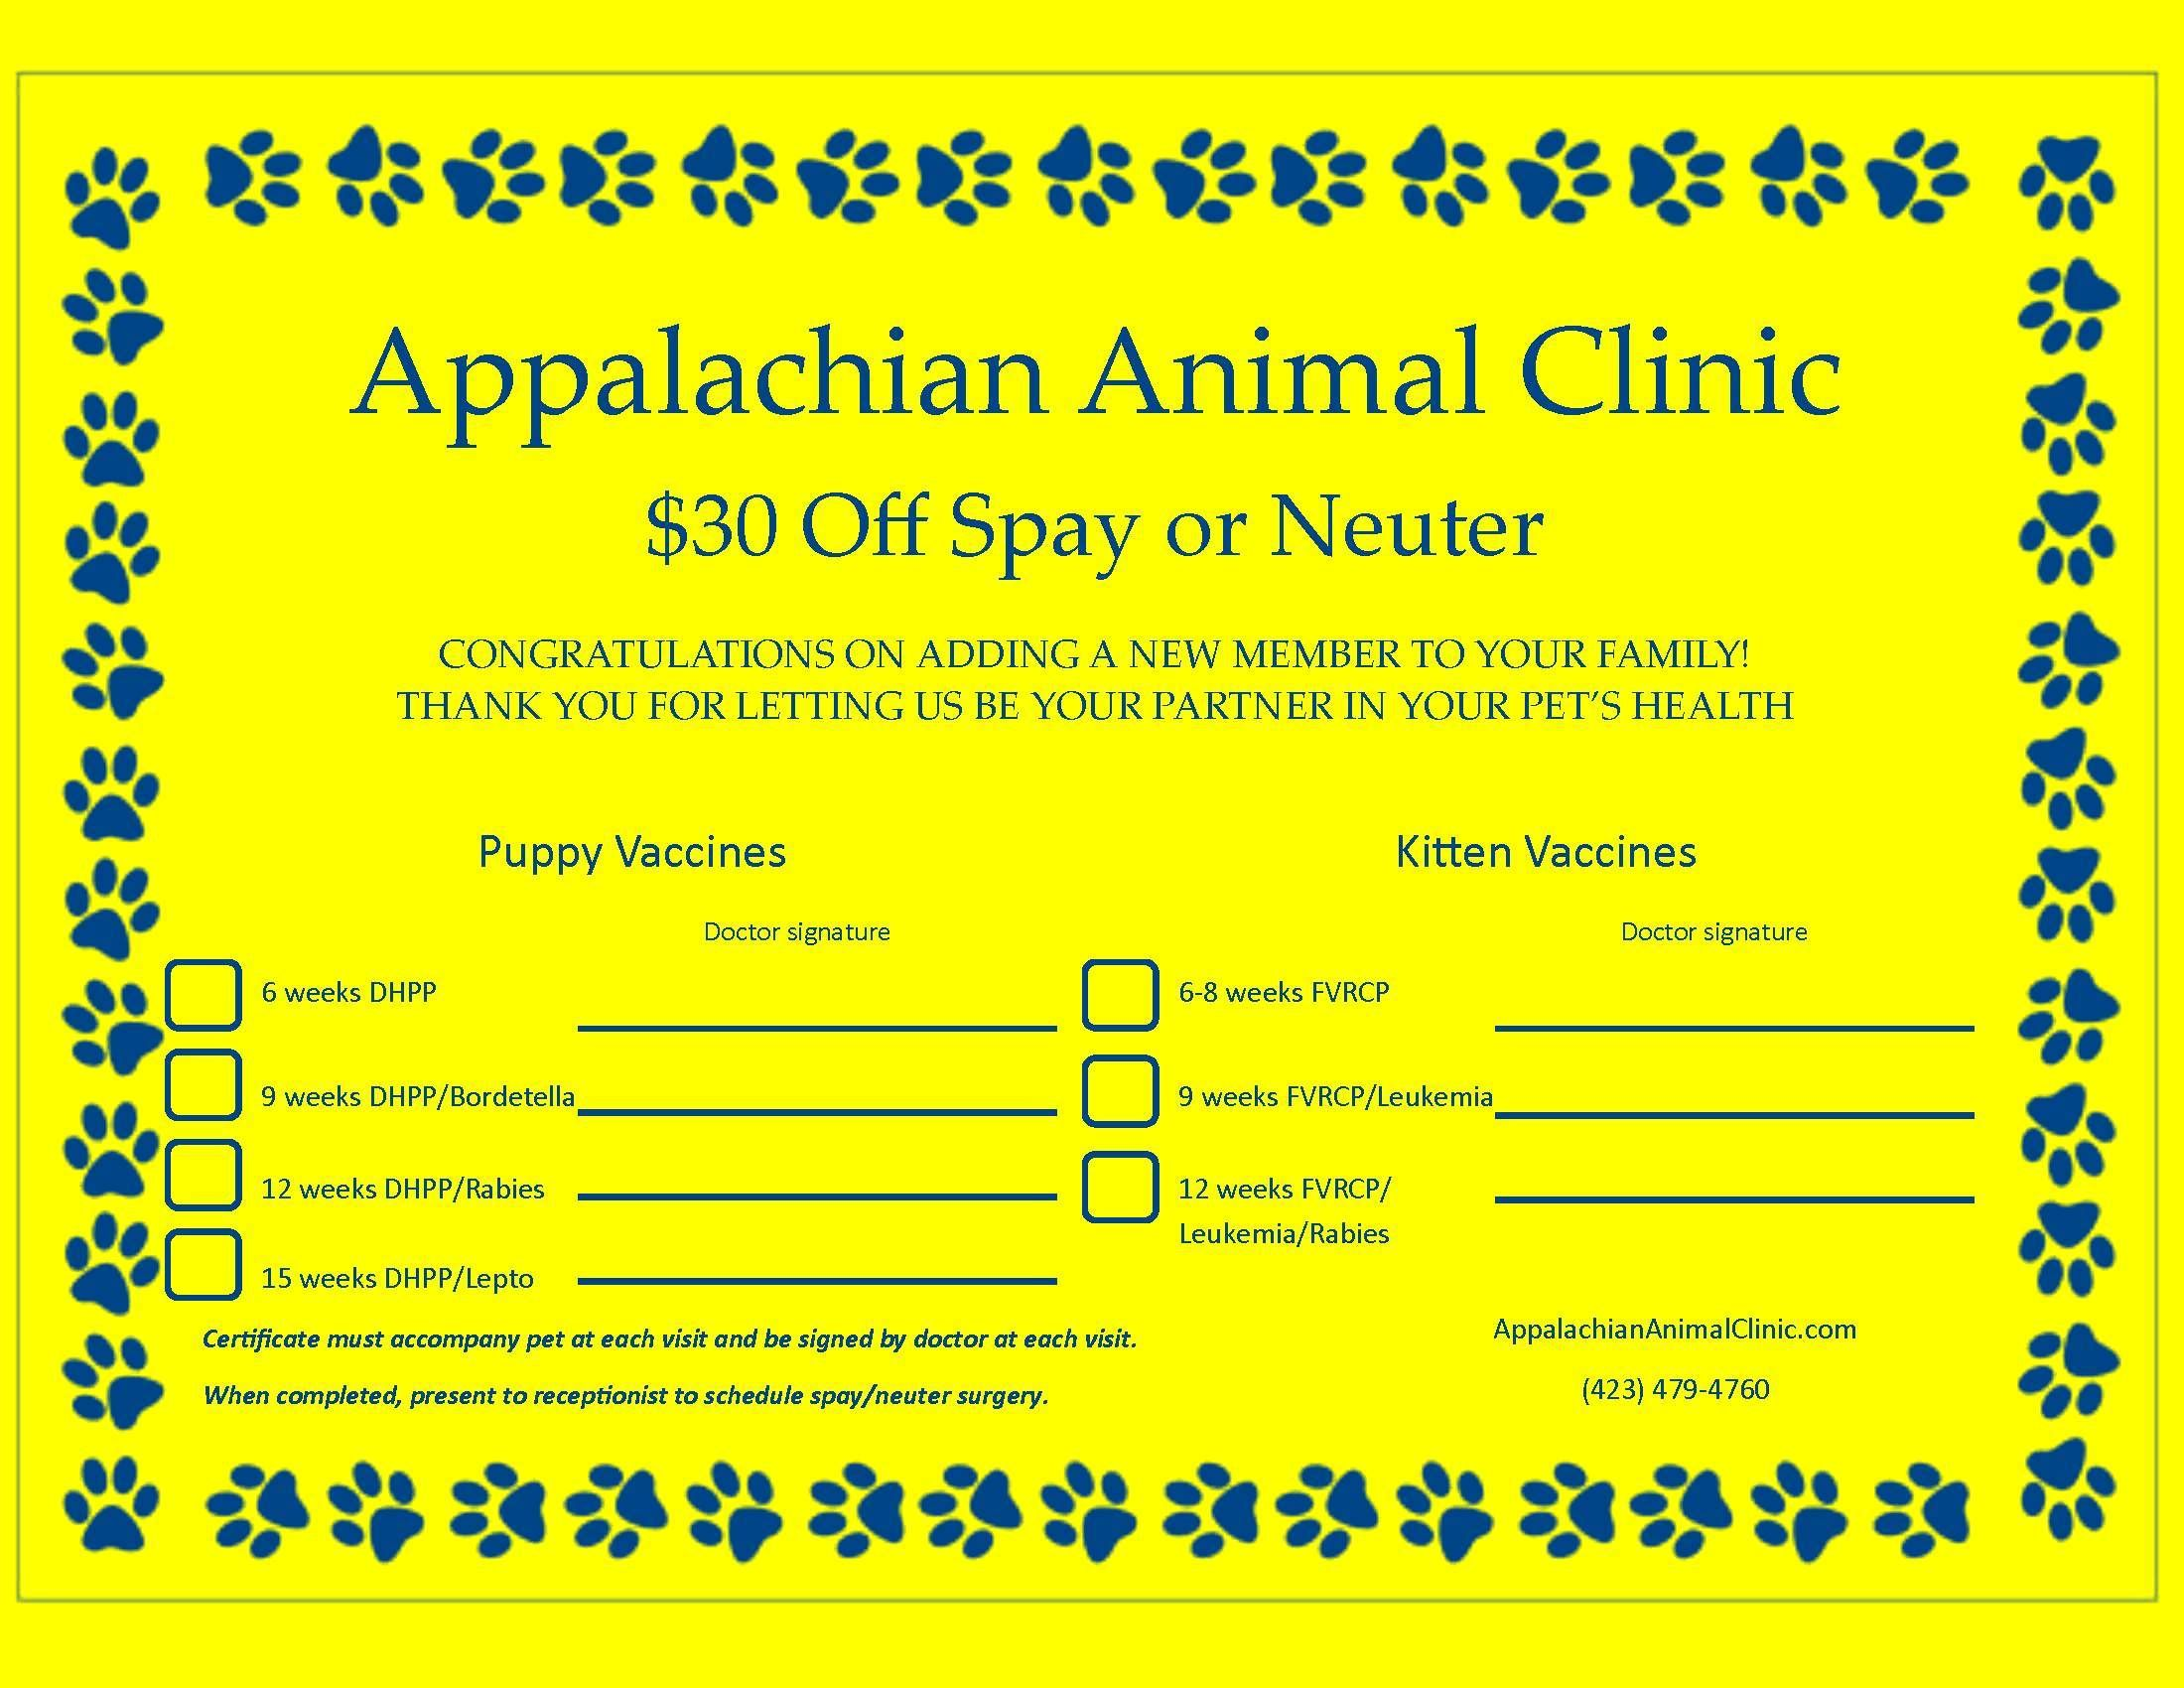 Save on Spay/Neuter for Puppies/Kittens